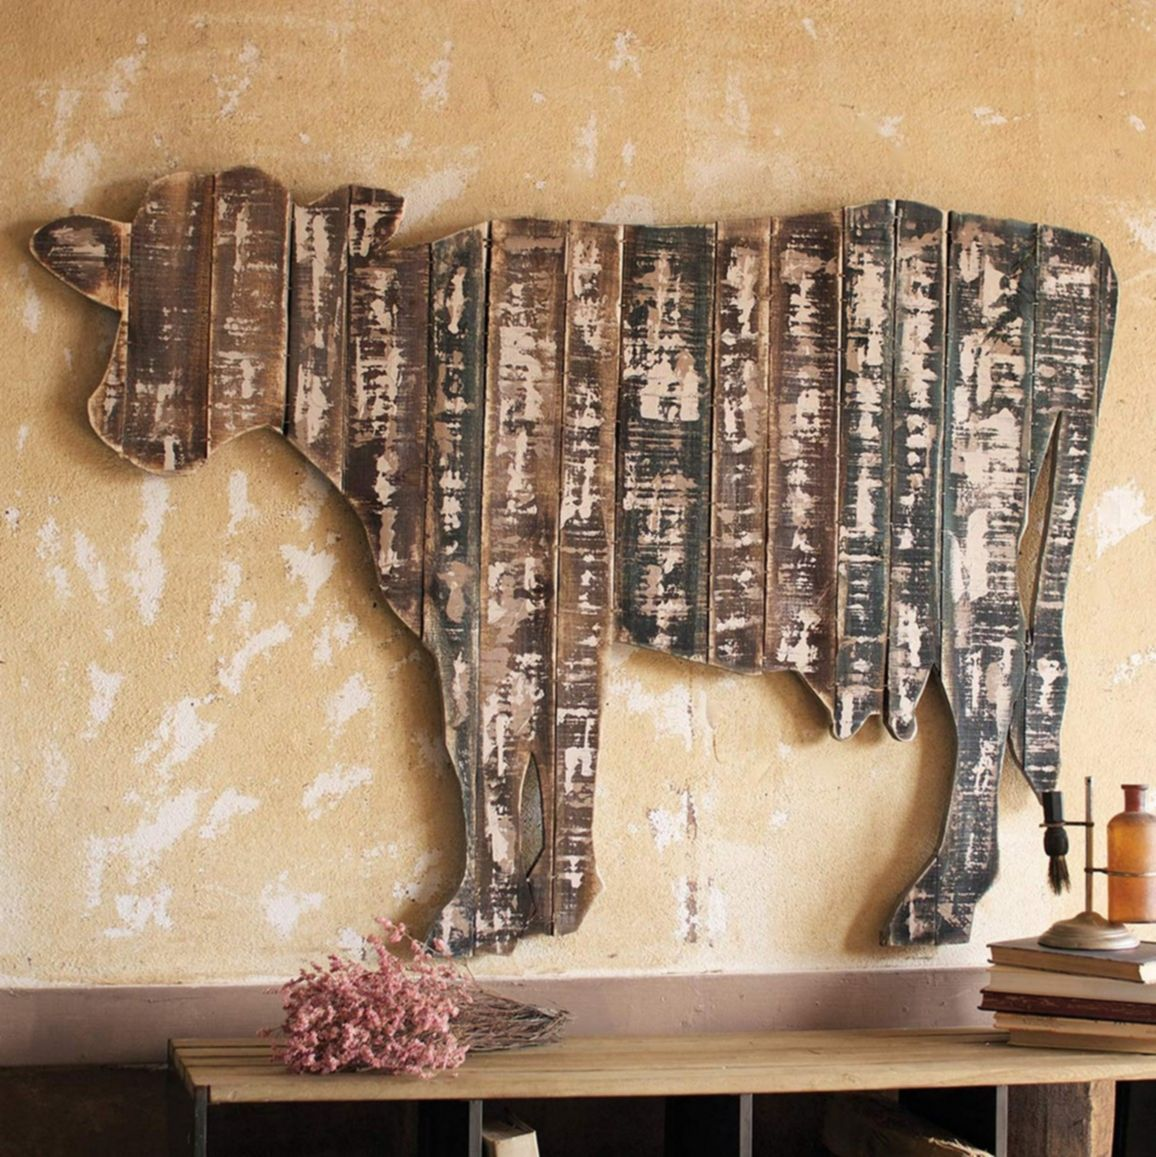 amazing Cow Decorating Ideas Part - 10: The Best 45+ Awesome Barn Wood Decorating Ideas for Easy Diy Home Decor  http: